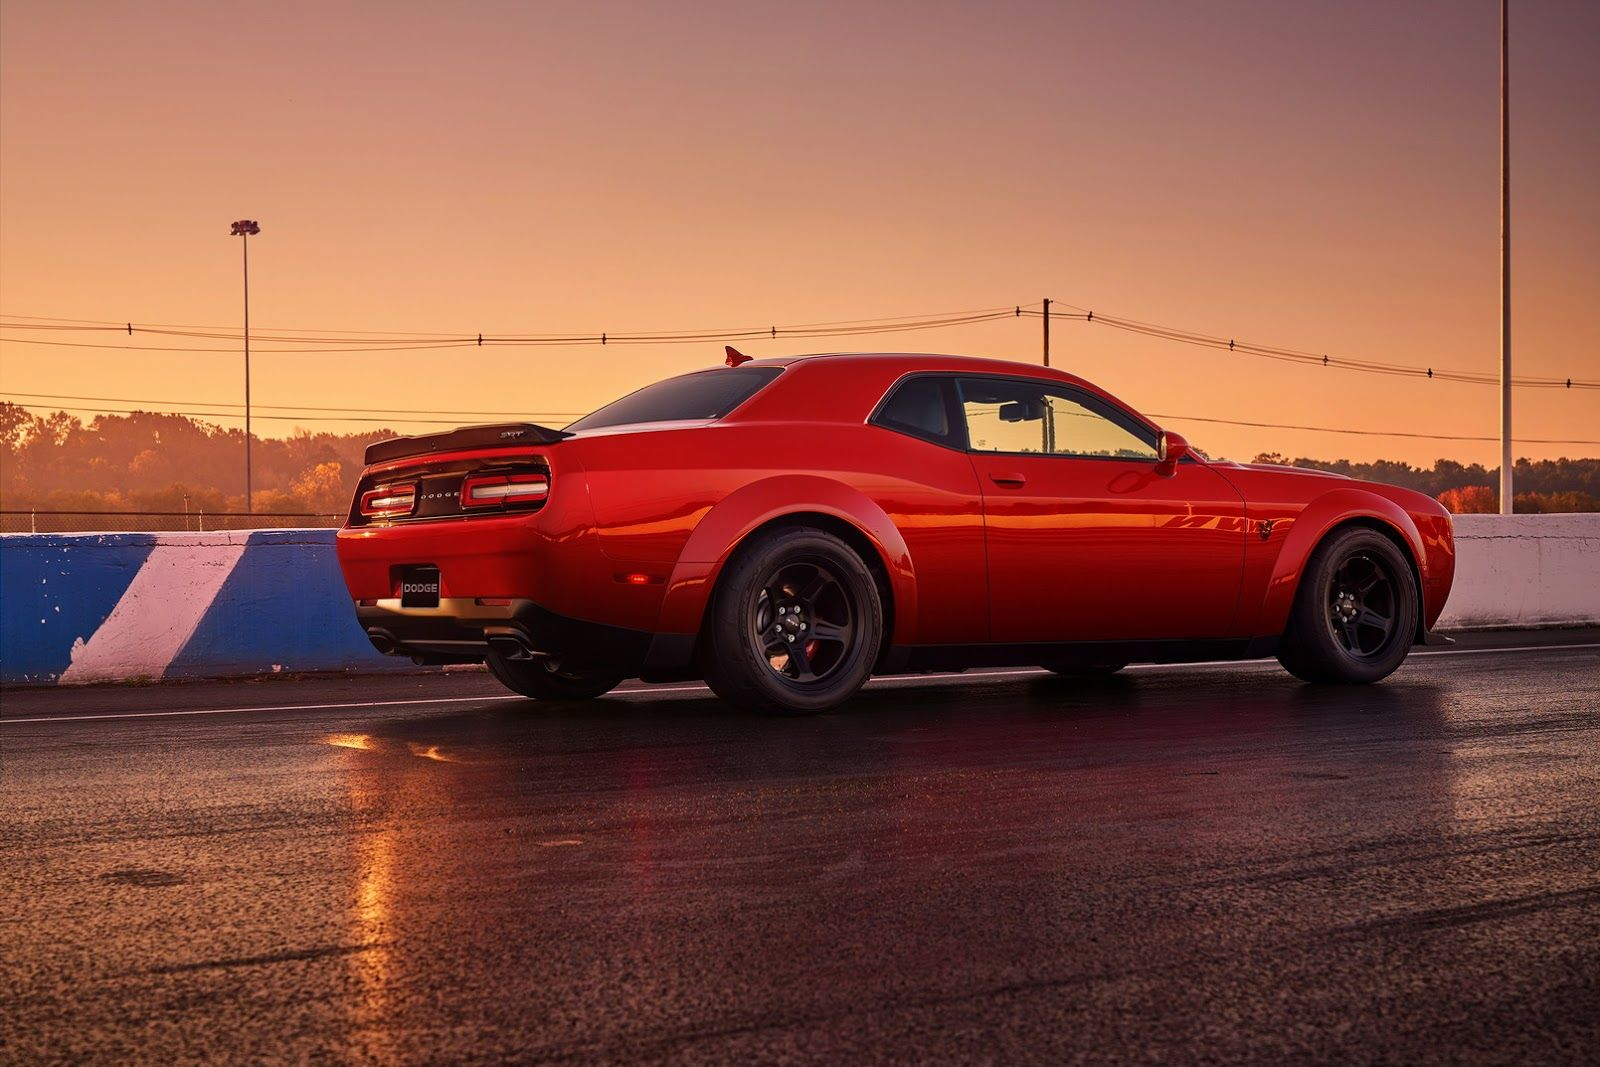 Ebay Has A 2018 Dodge Challenger Demon For 250k You Can Easily Find